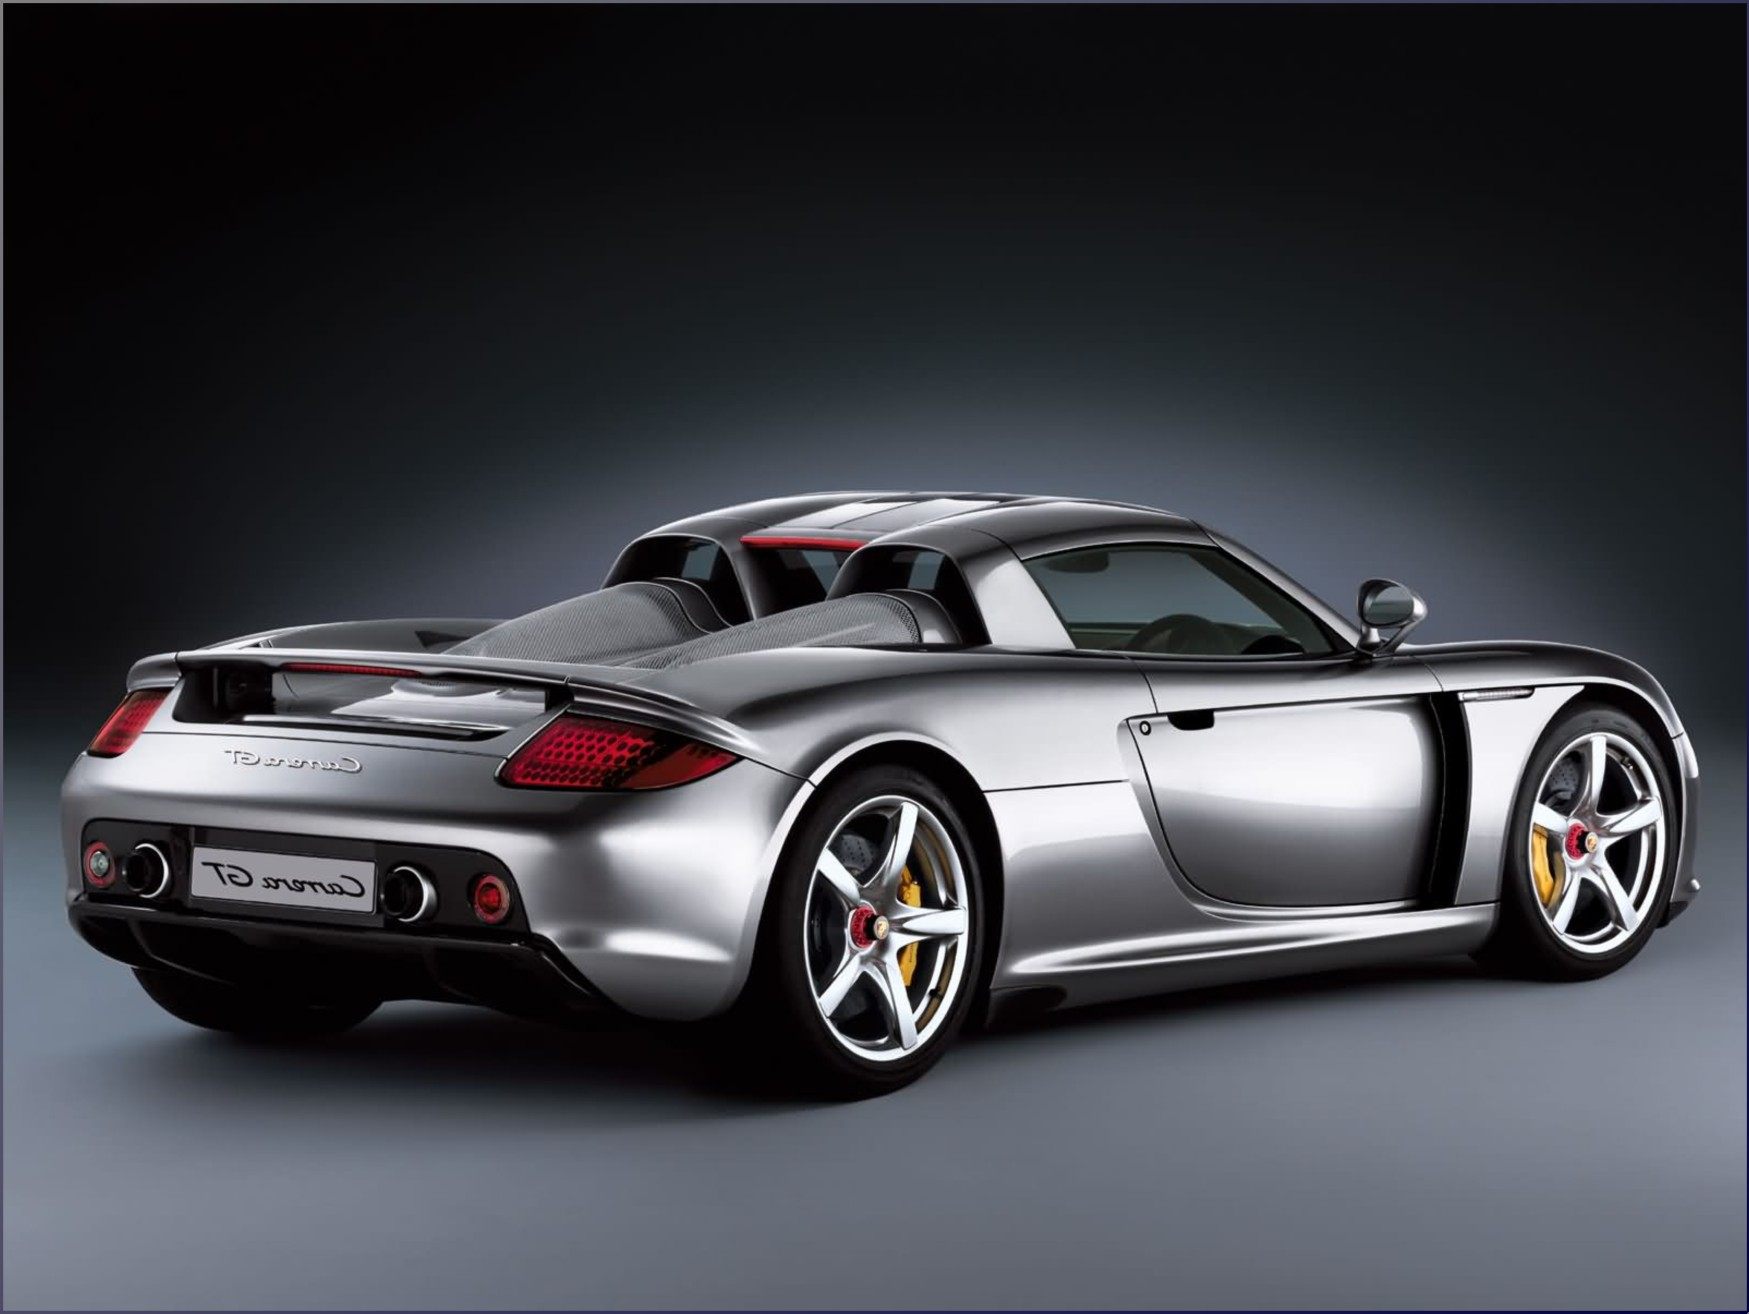 Hot Cars - Carrera GT